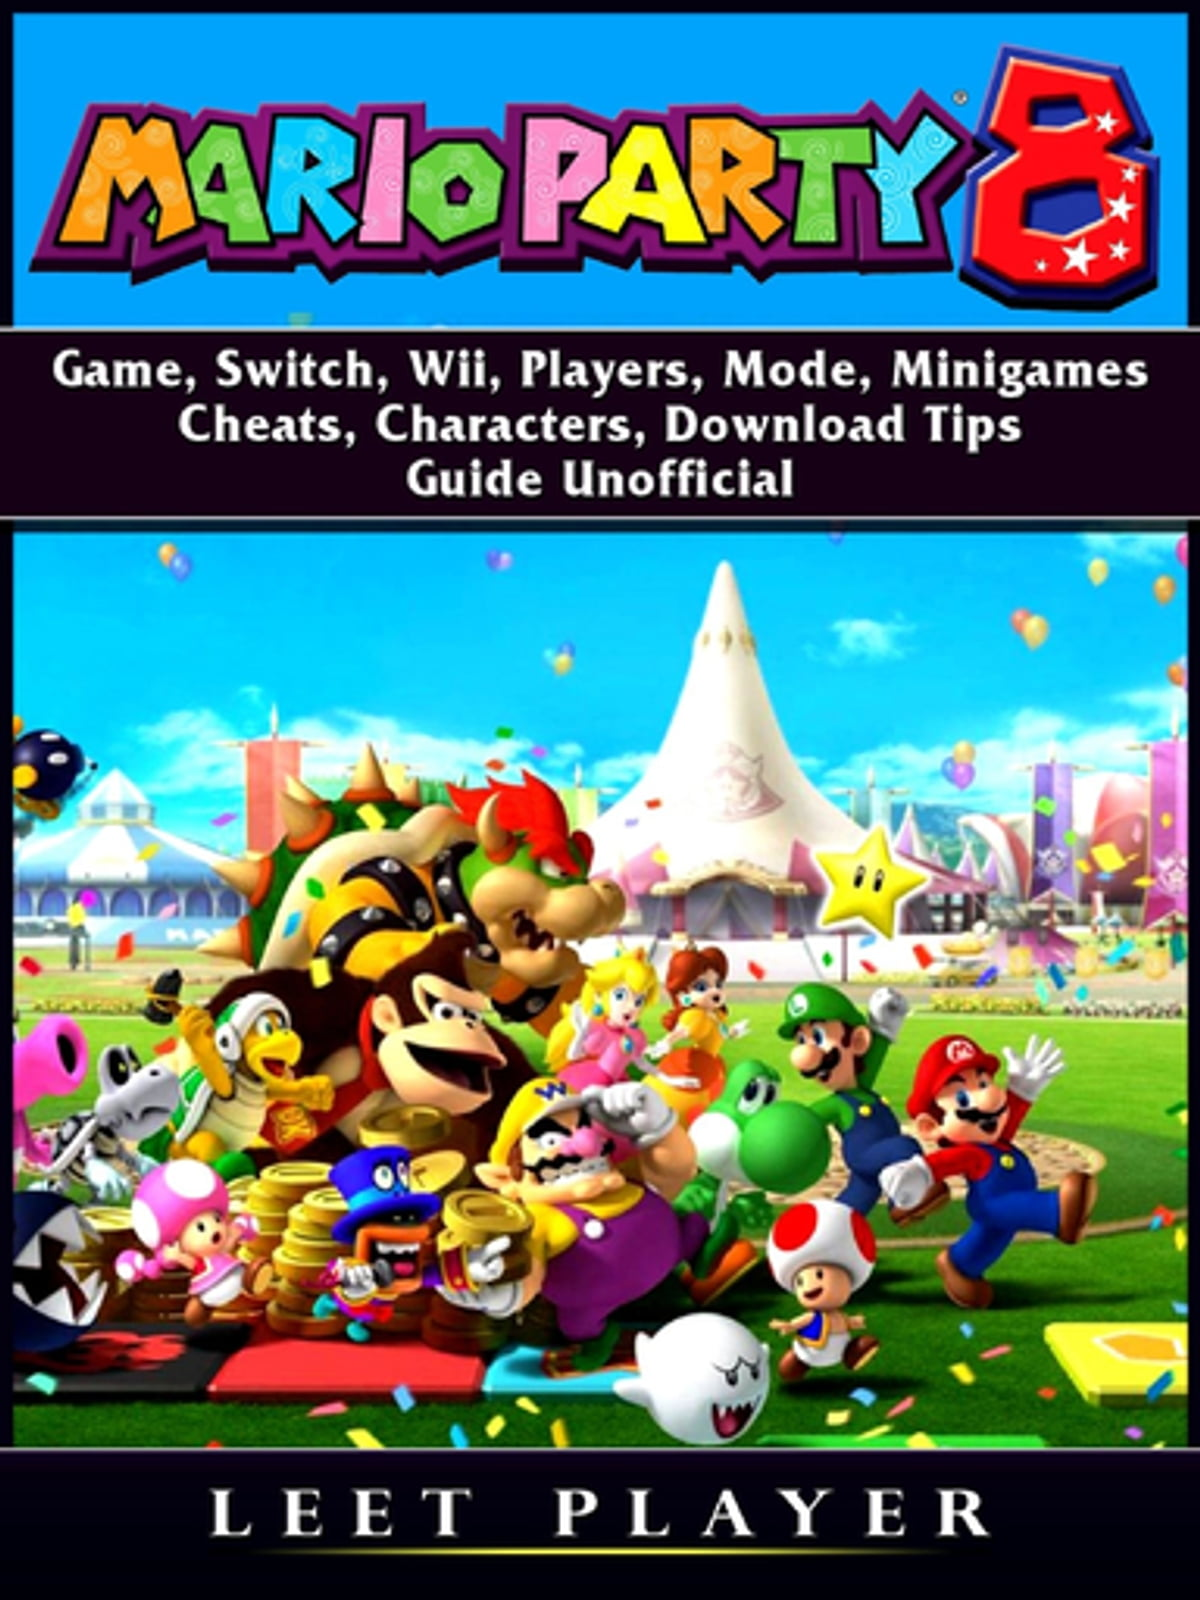 super mario party 8 game switch wii players mode minigames cheats characters download. Black Bedroom Furniture Sets. Home Design Ideas